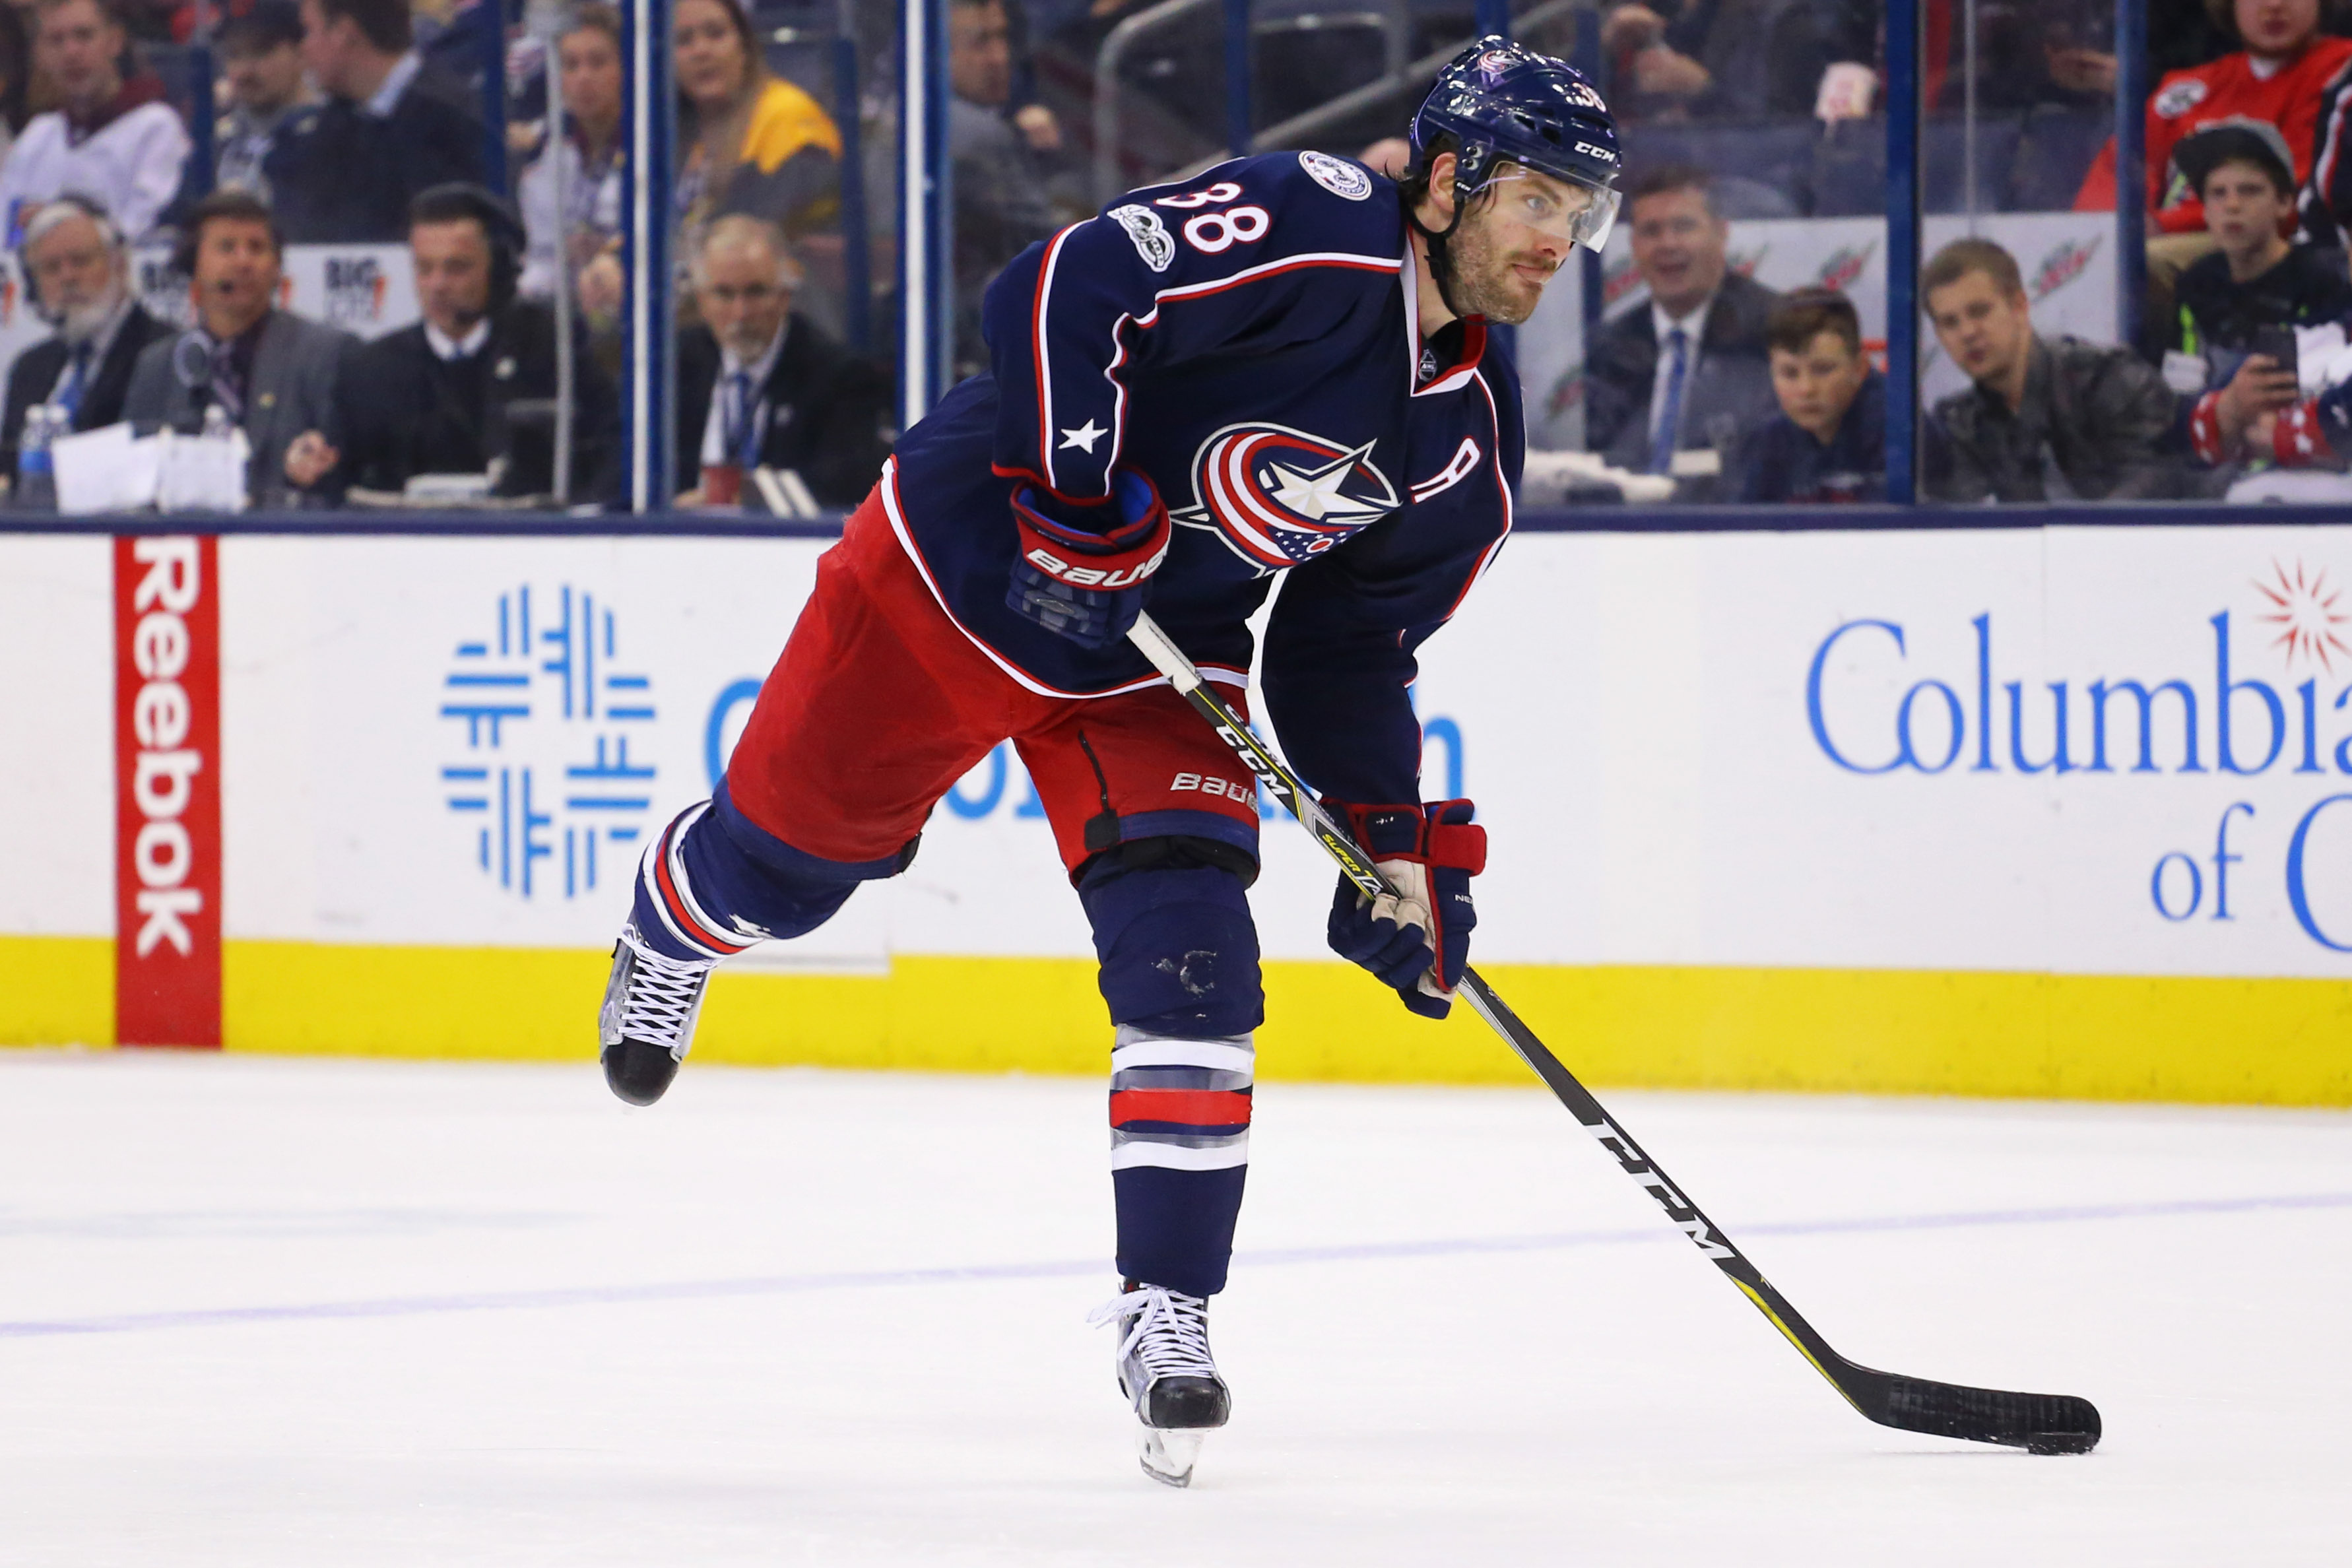 NHL Expansion Draft: Columbus Blue Jackets Protection Strategy